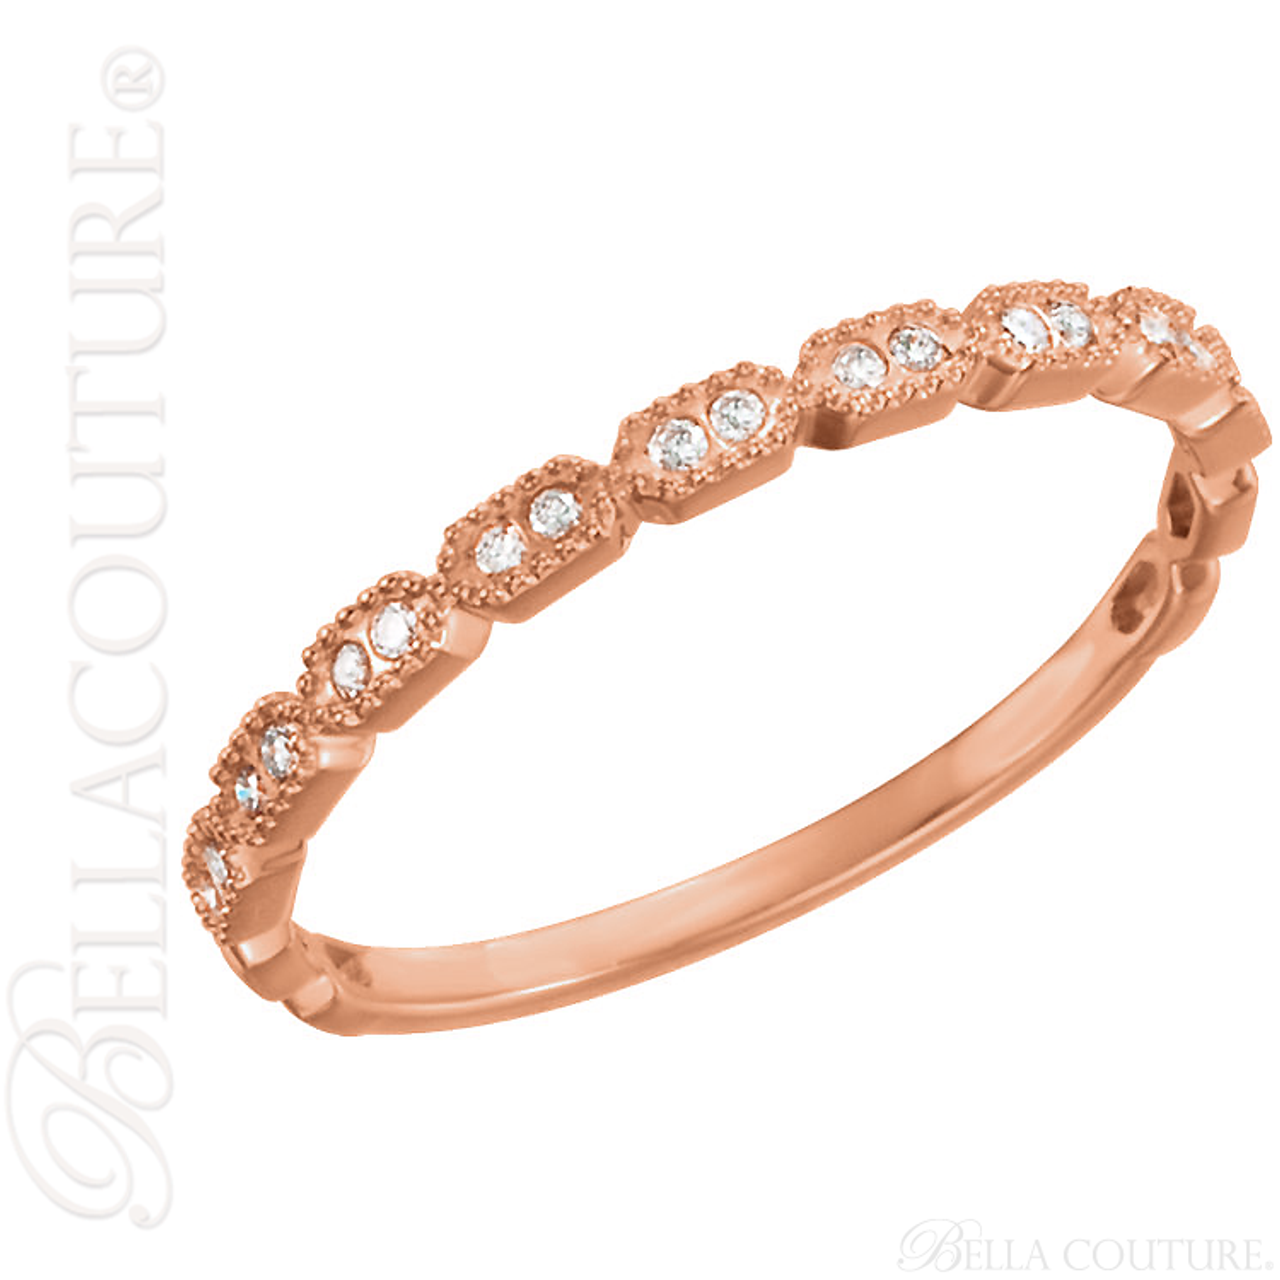 NEW) BELLA COUTURE BELLE Fine Gorgeous Pave\' Double Diamond 14K Rose ...